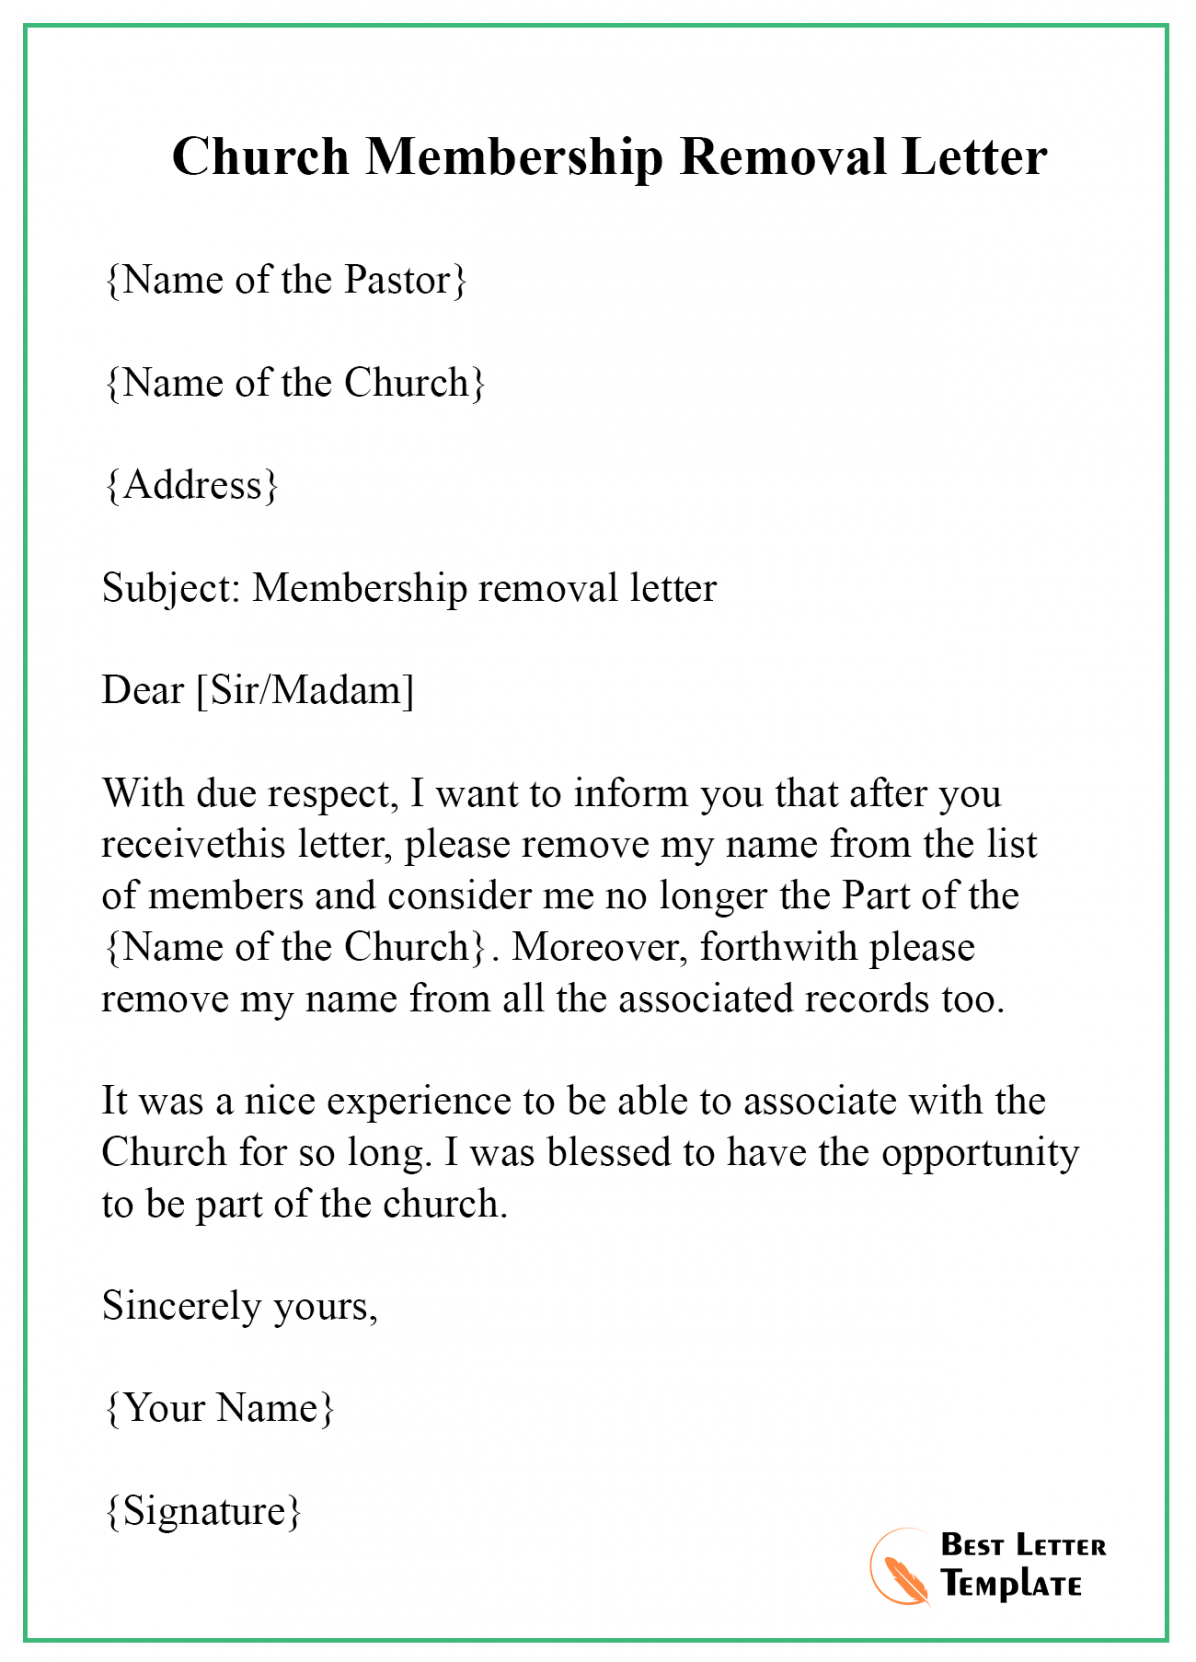 churchmembershipremovalletter  best letter template church membership resignation letter pdf